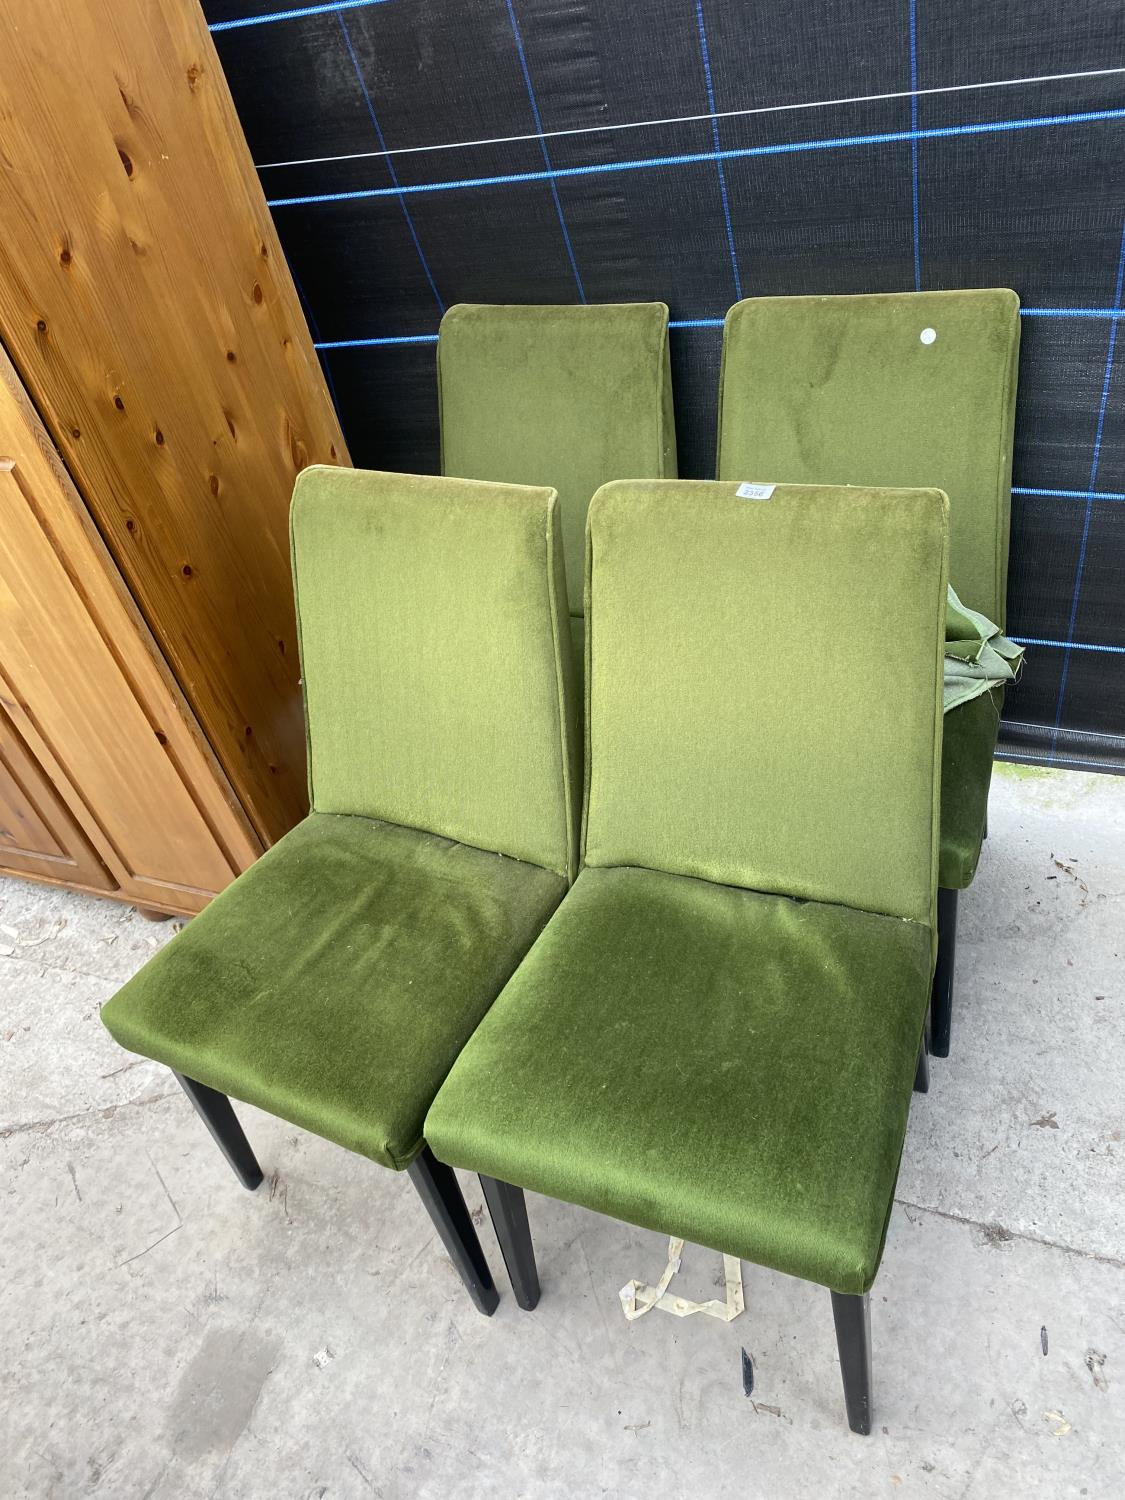 FOUR MID 20TH CENTURY DINING CHAIRS WITH GREEN UPHOLSTERED AND BLACK PAINTED LEGS